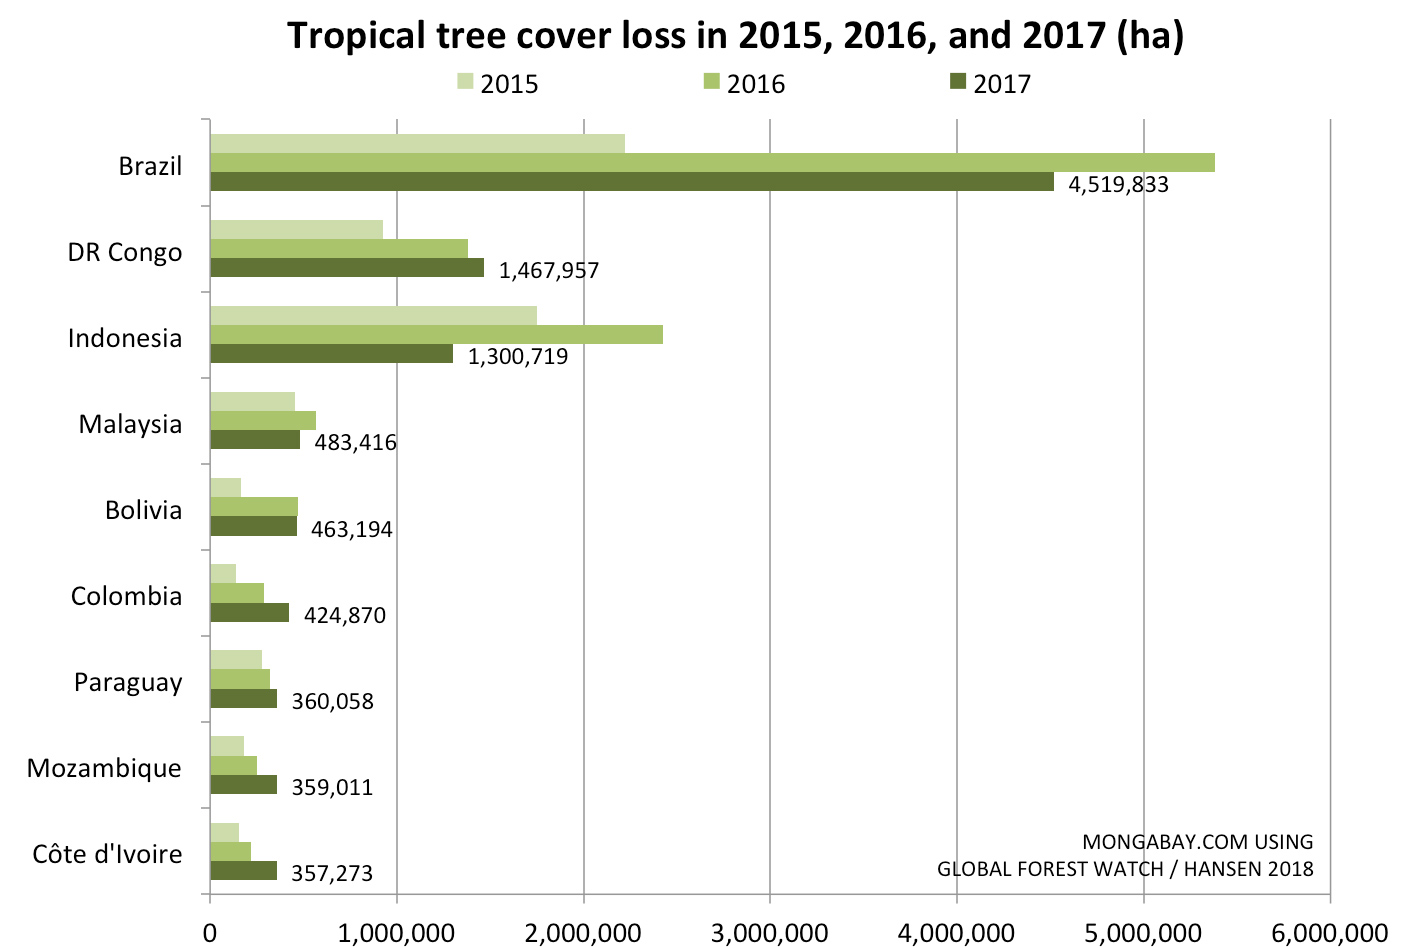 The world lost an area of tropical forest the size of Bangladesh in 2017 32